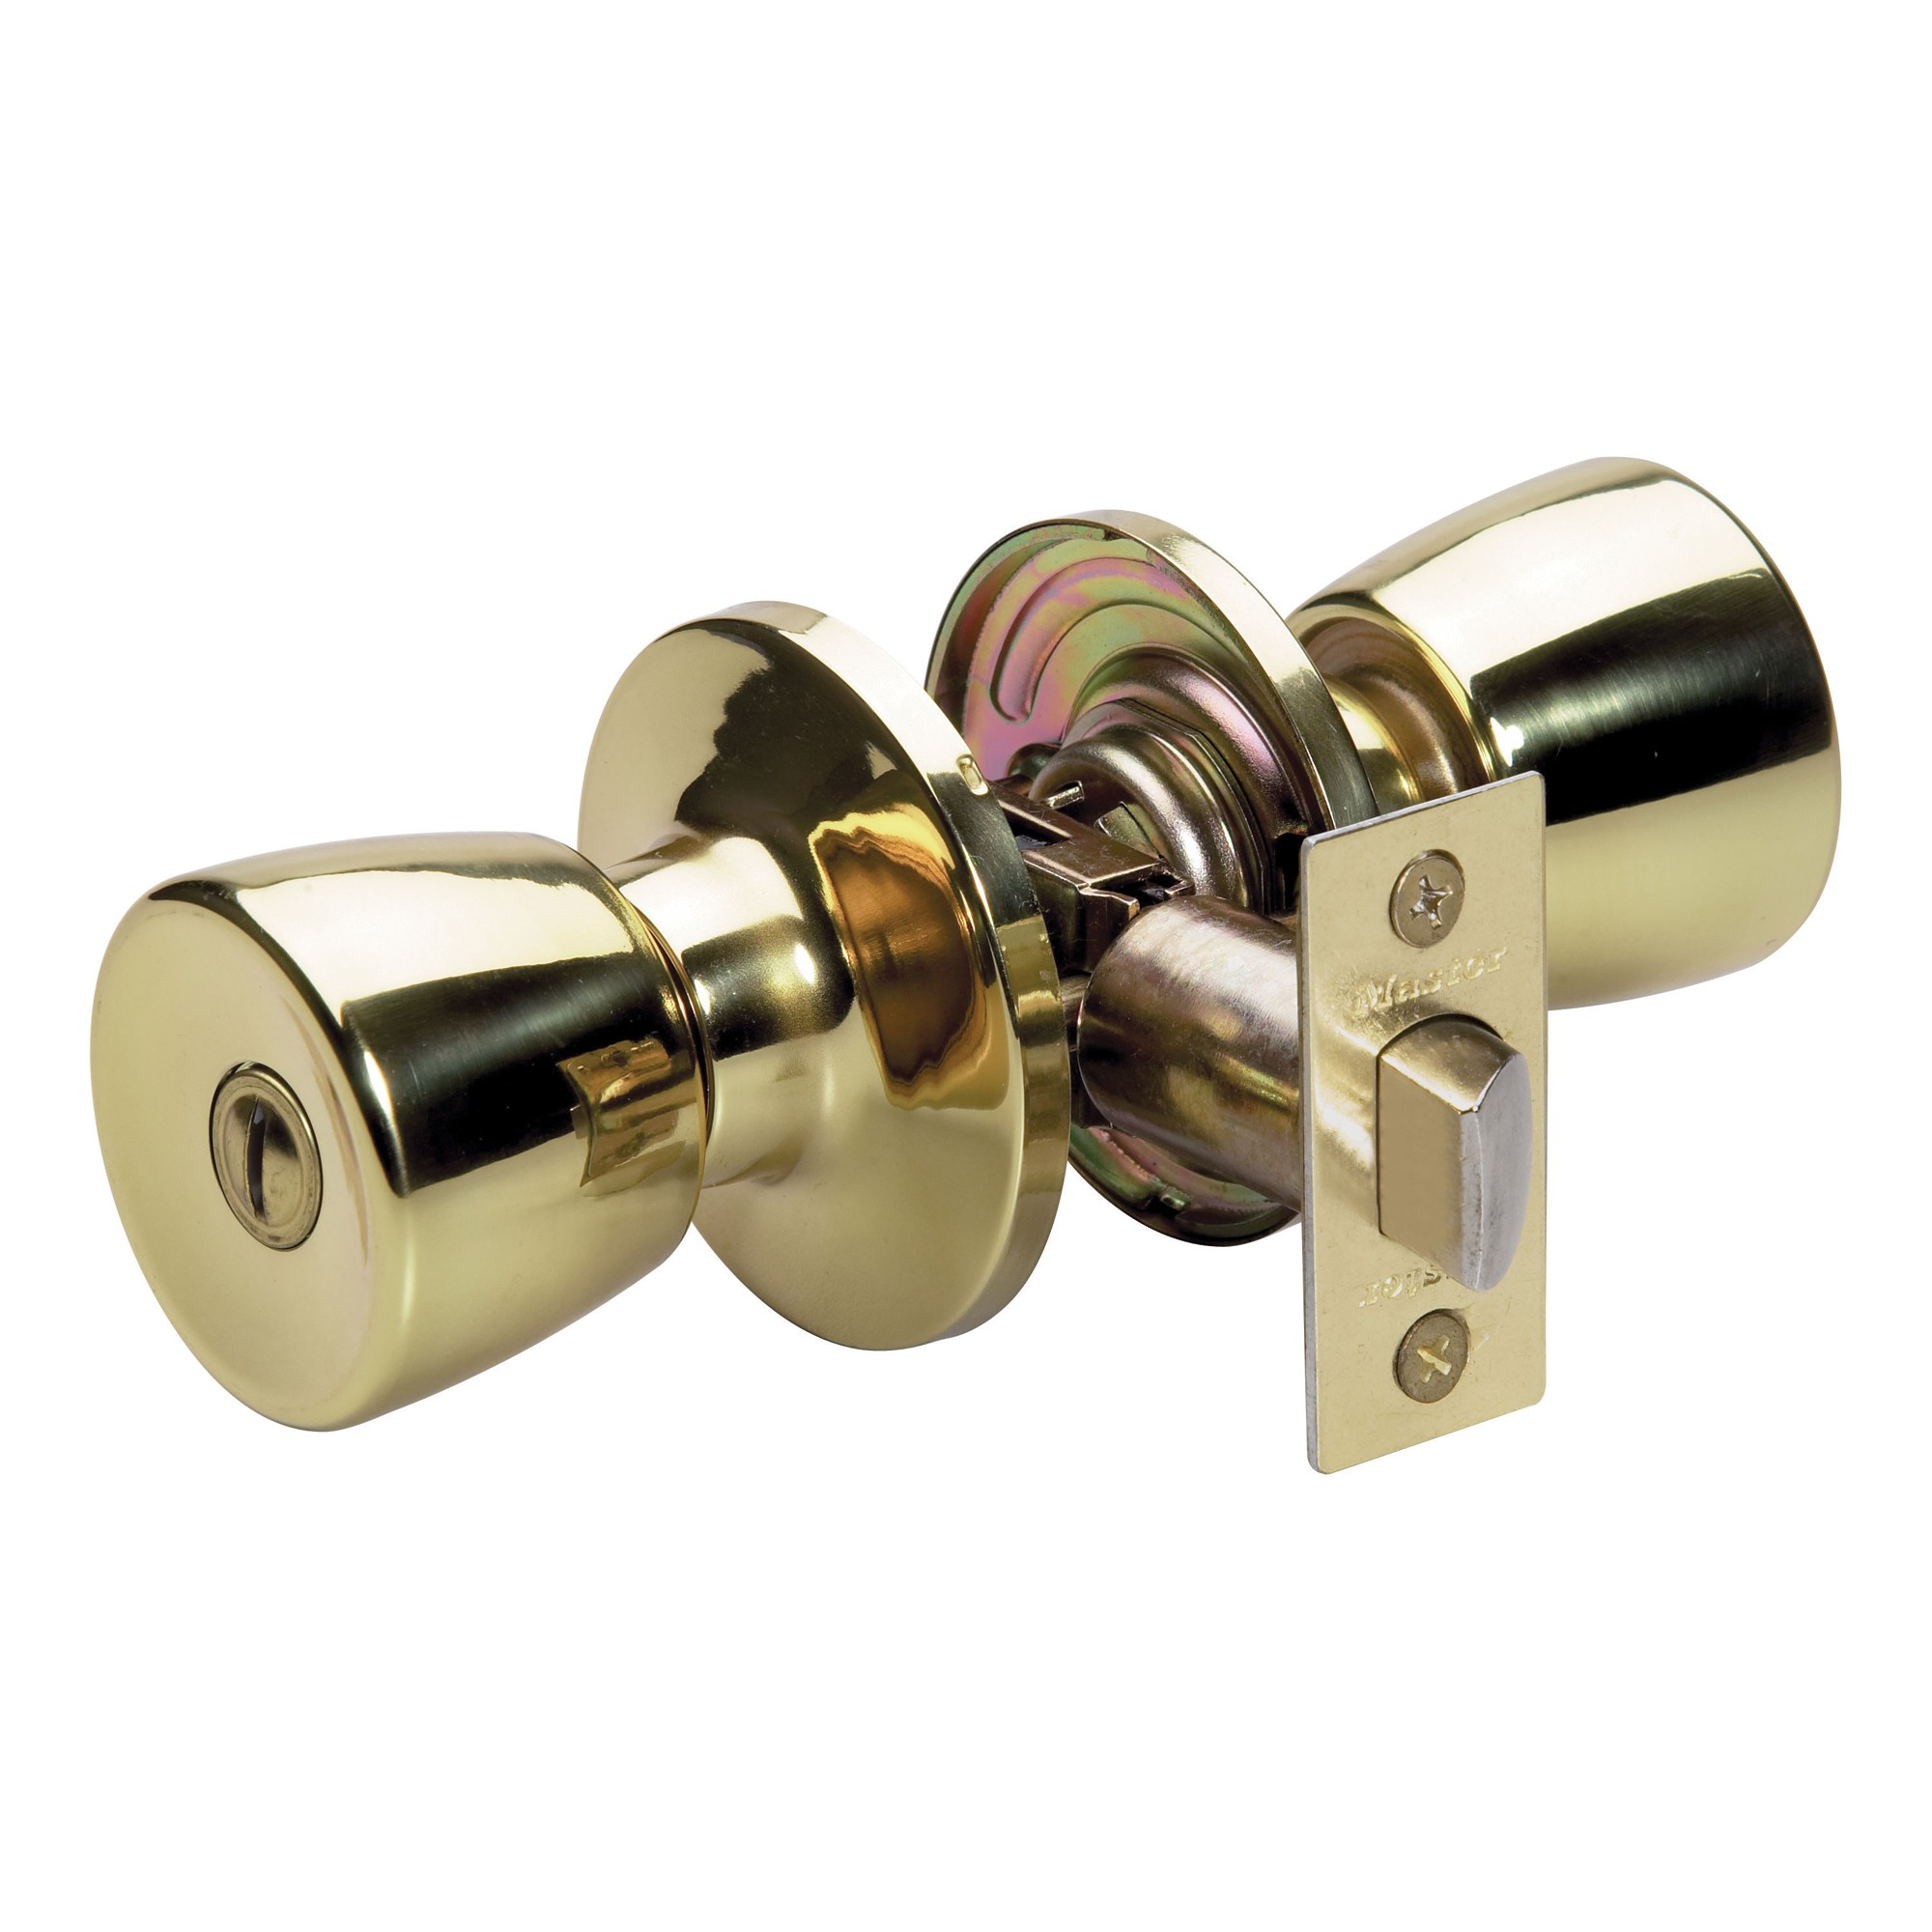 locking door knob photo - 2